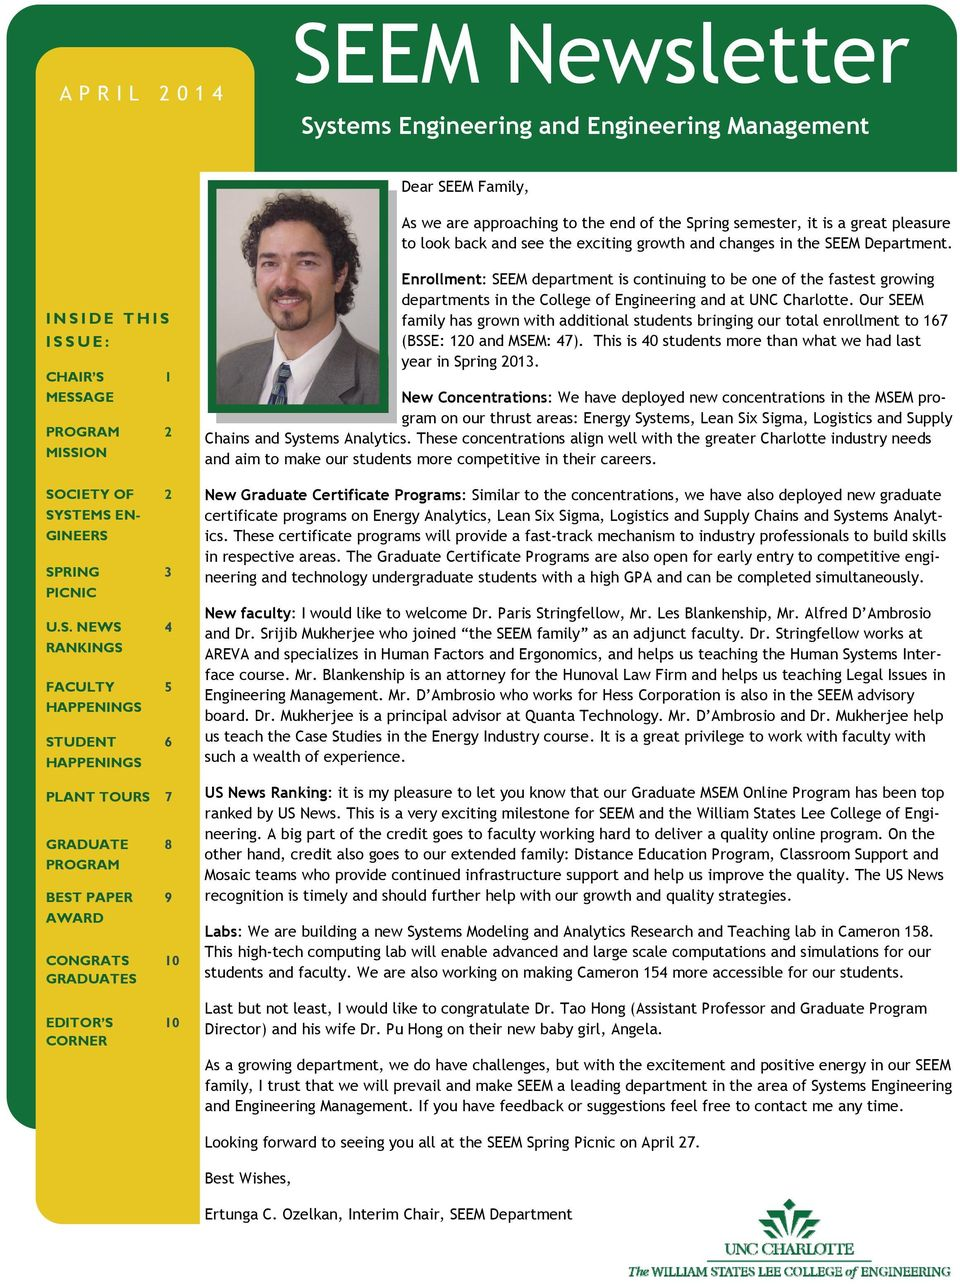 INSIDE THIS ISSUE: CHAIR S 1 MESSAGE PROGRAM 2 MISSION Enrollment: SEEM department is continuing to be one of the fastest growing departments in the College of Engineering and at UNC Charlotte.